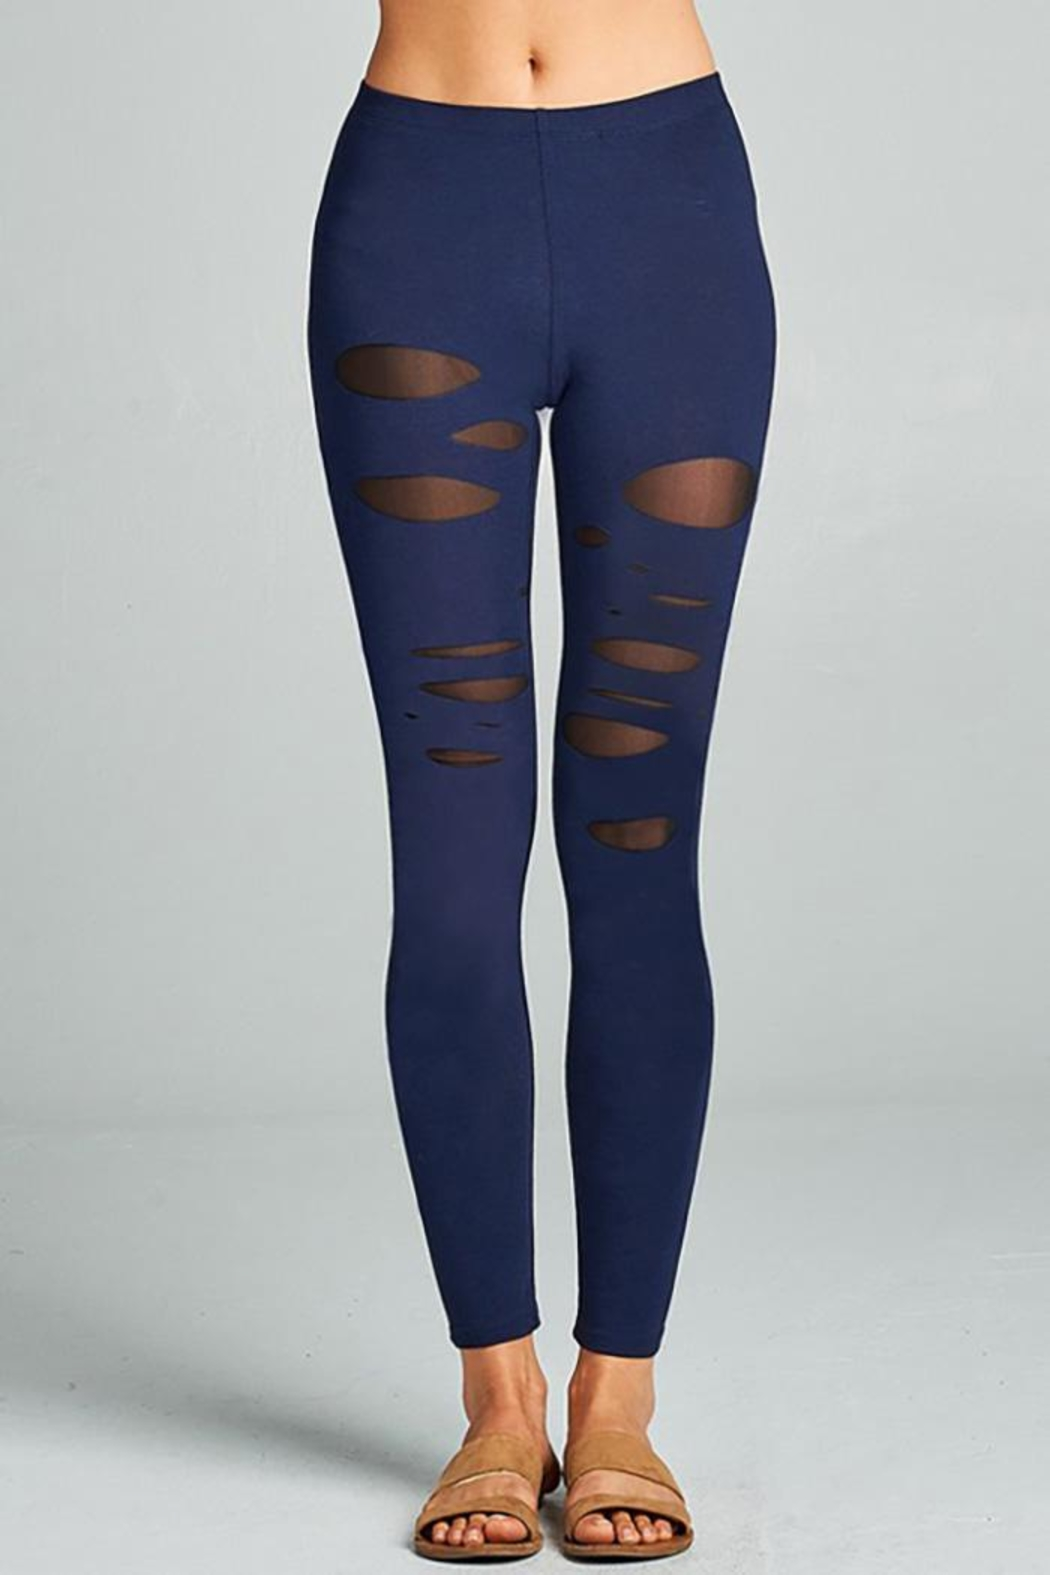 0 styleholic Cotton Jersey Leggings - Main Image